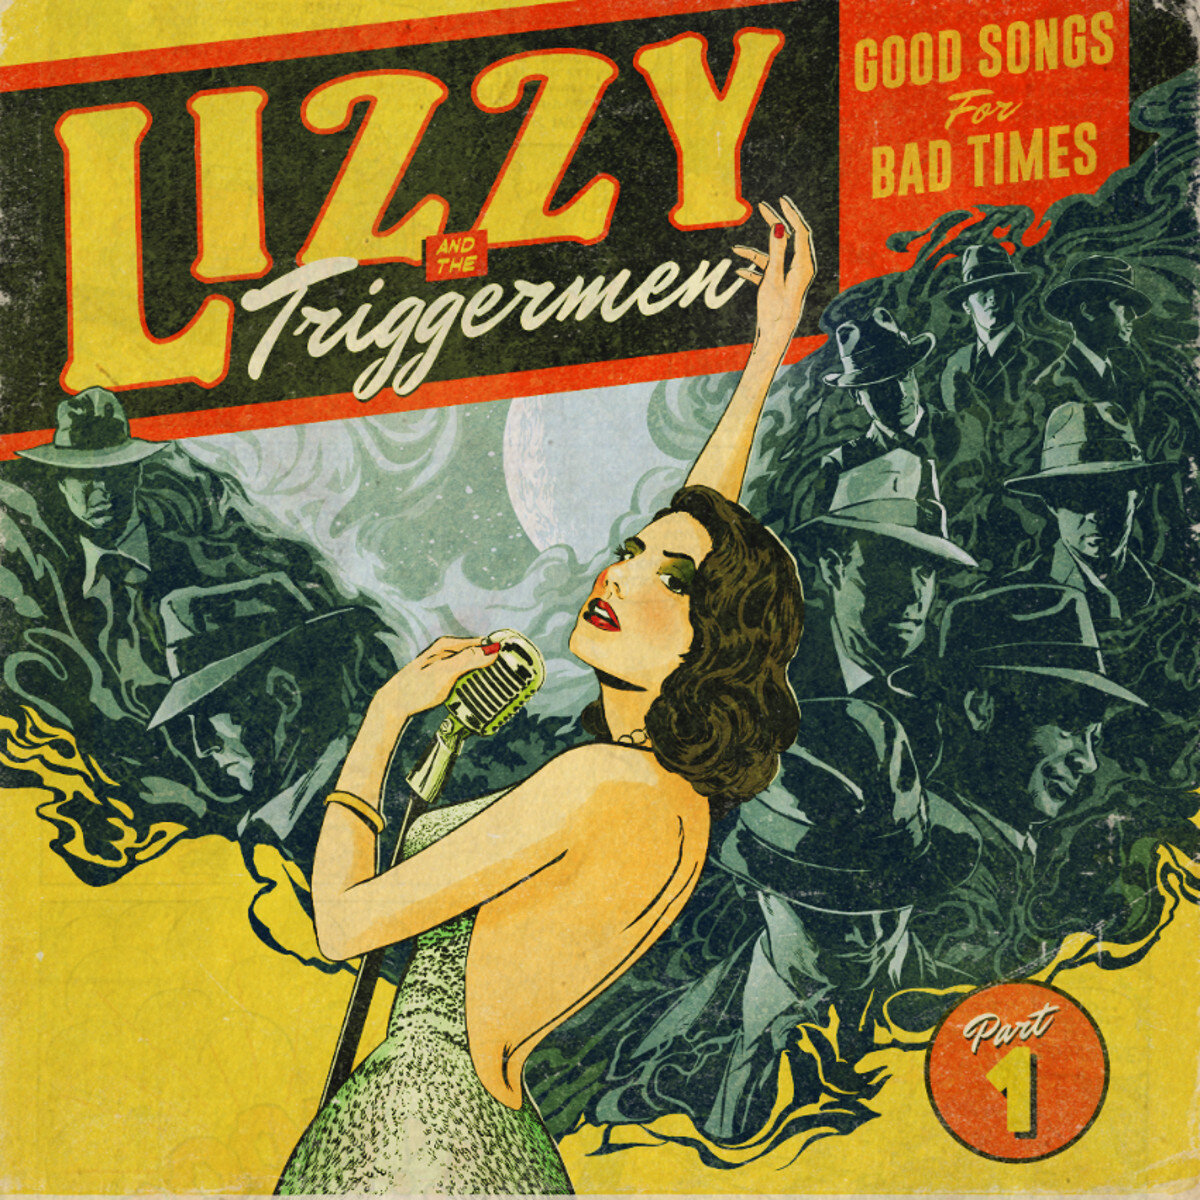 Lizzy Triggermen Good Songs for Bad Times